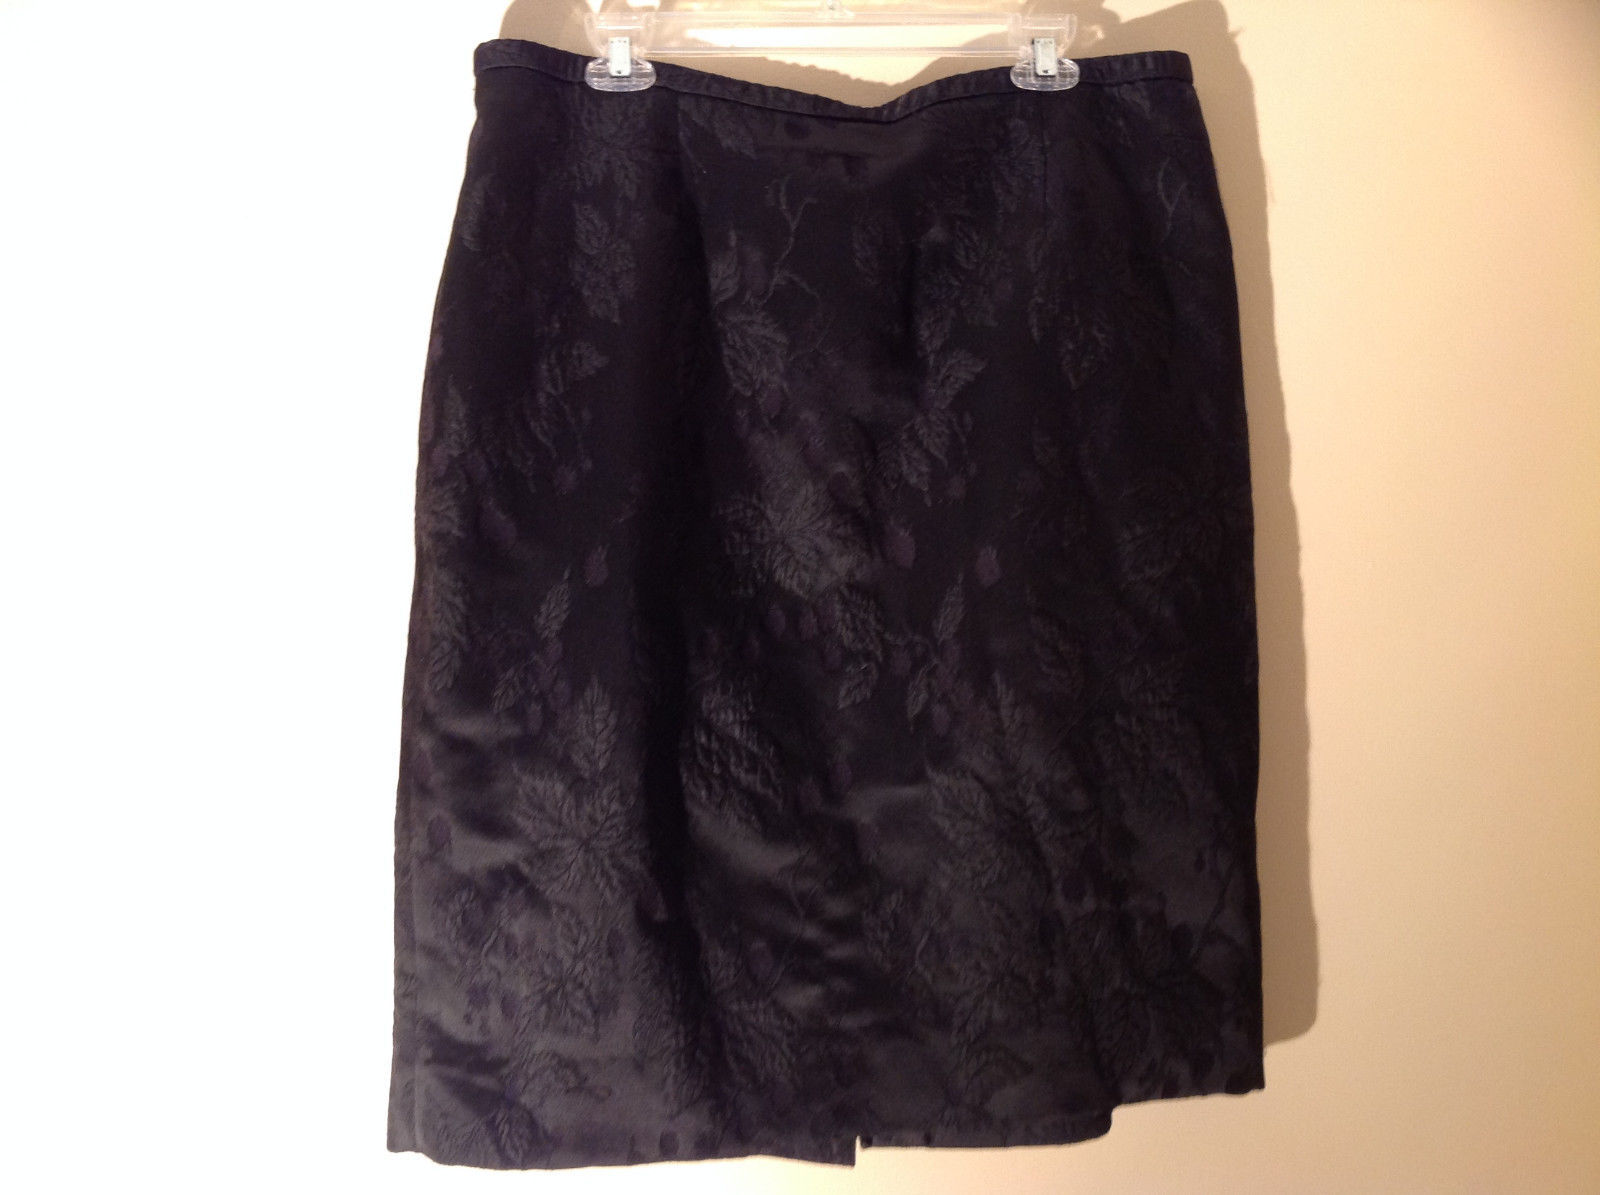 Black Floral Imprinted Design Knee Length Skirt by Dana Buchman Size 18